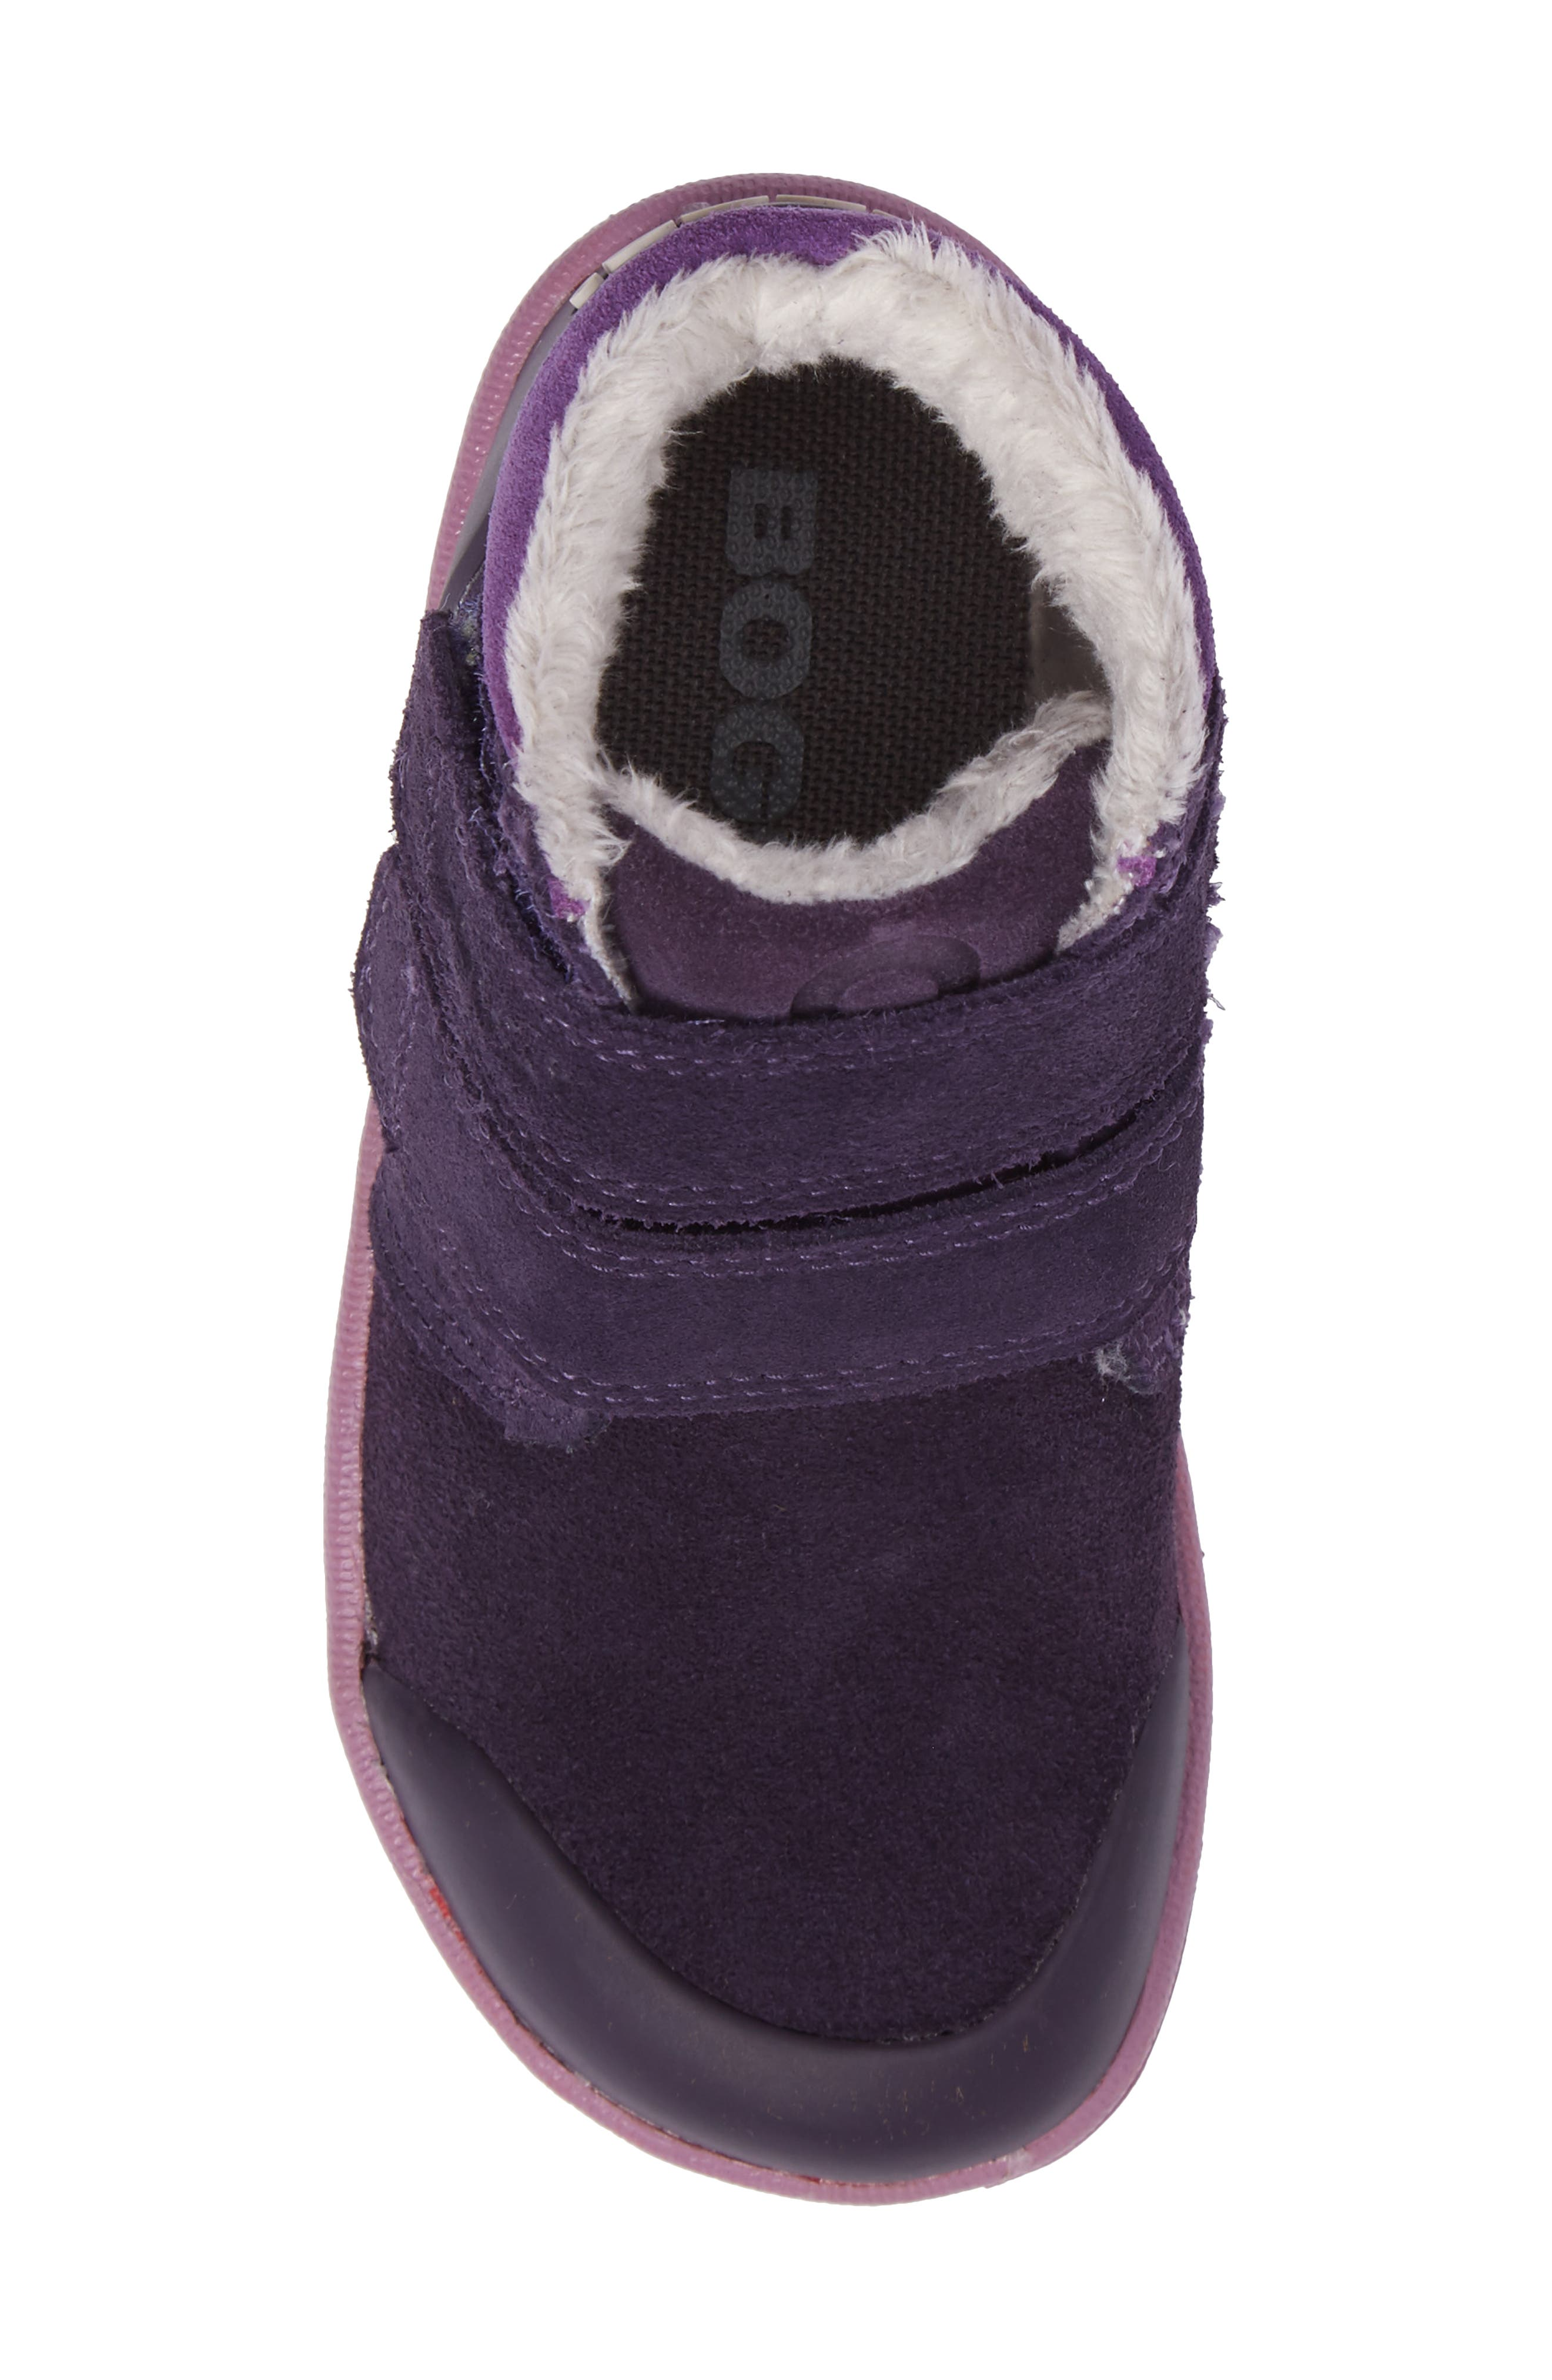 Samantha Faux Fur Waterproof Boot,                             Alternate thumbnail 5, color,                             EGGPLANT